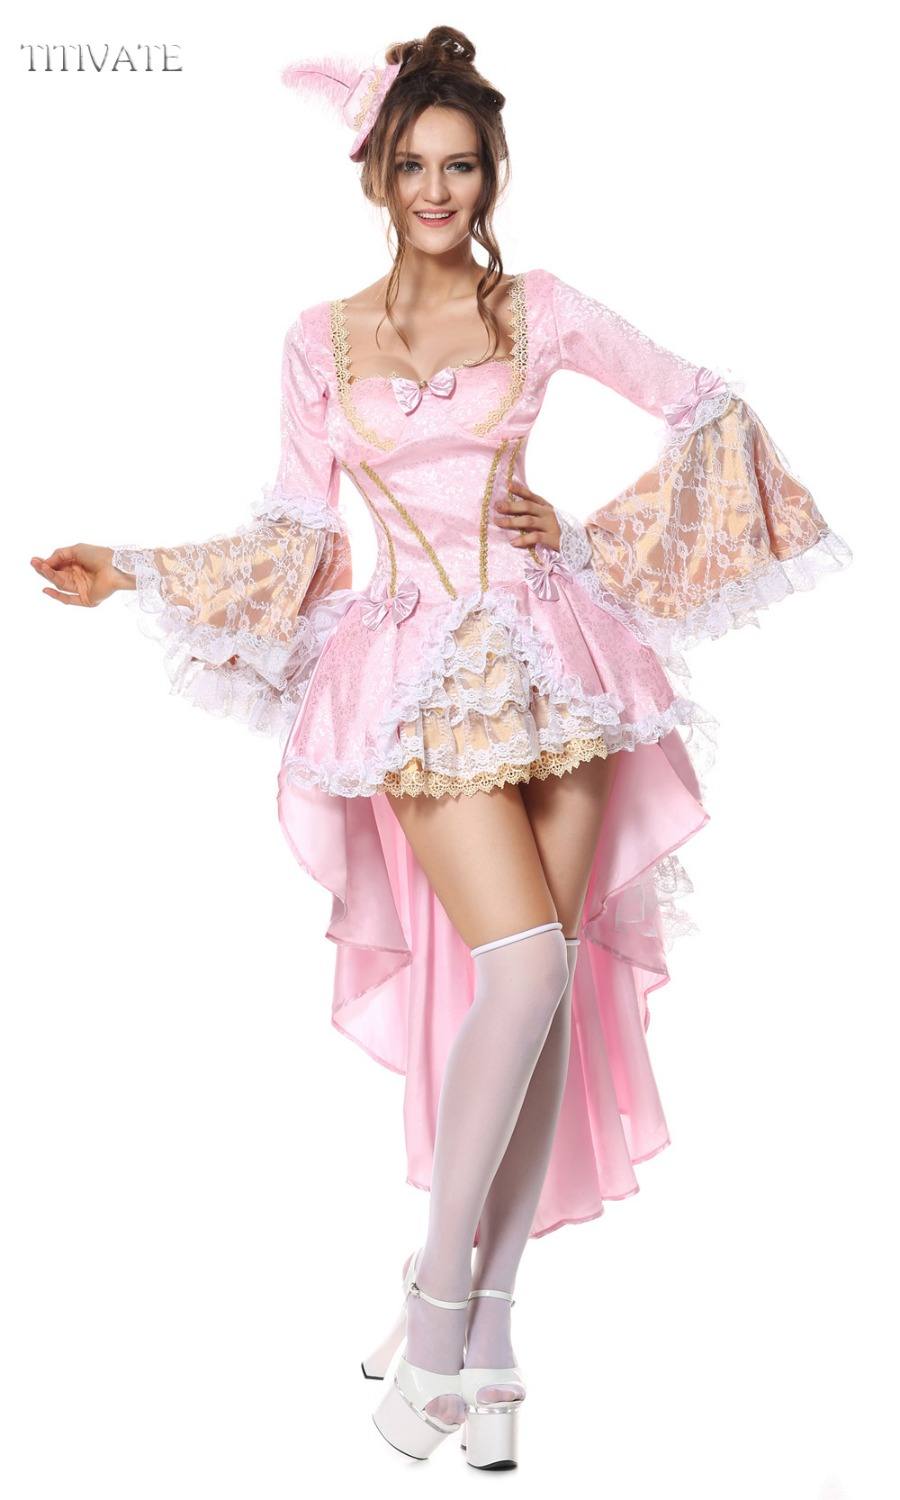 titivate deluxe queen princess costume halloween hen party carnival